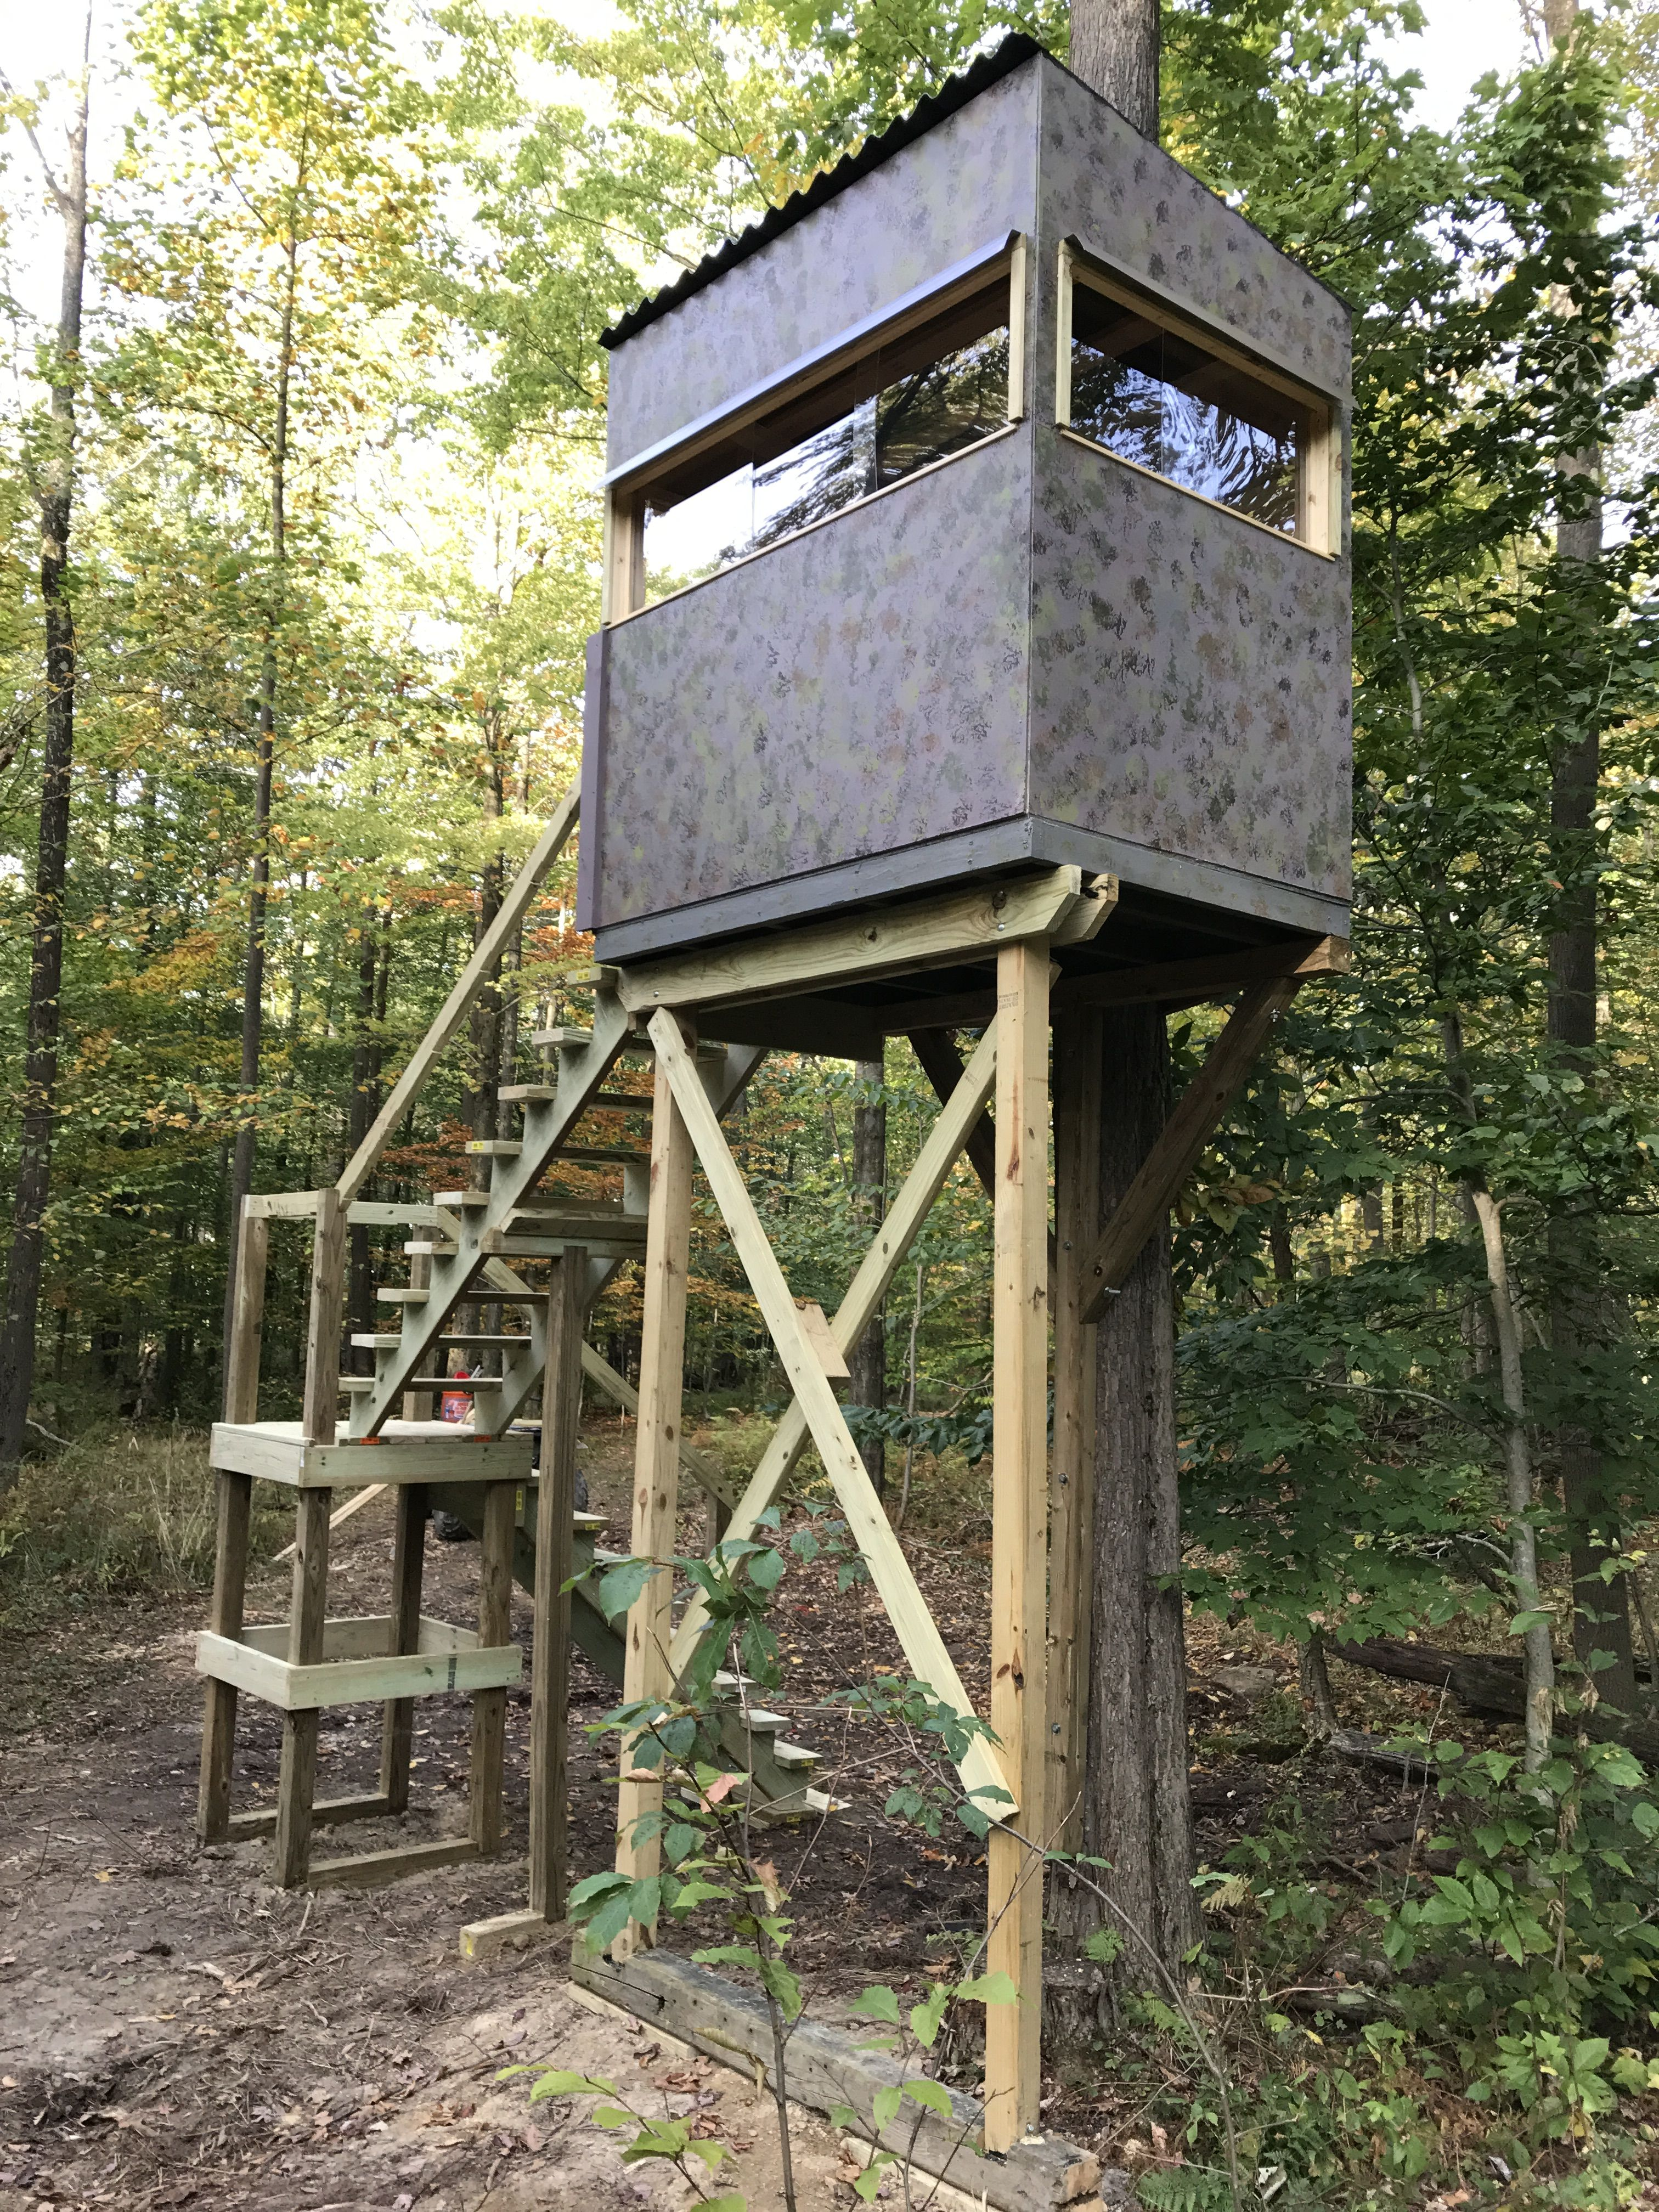 get cheap on chair hunting realtree find ground blinds quotations blind shopping xtra at guides tent ameristep person deals line deluxe